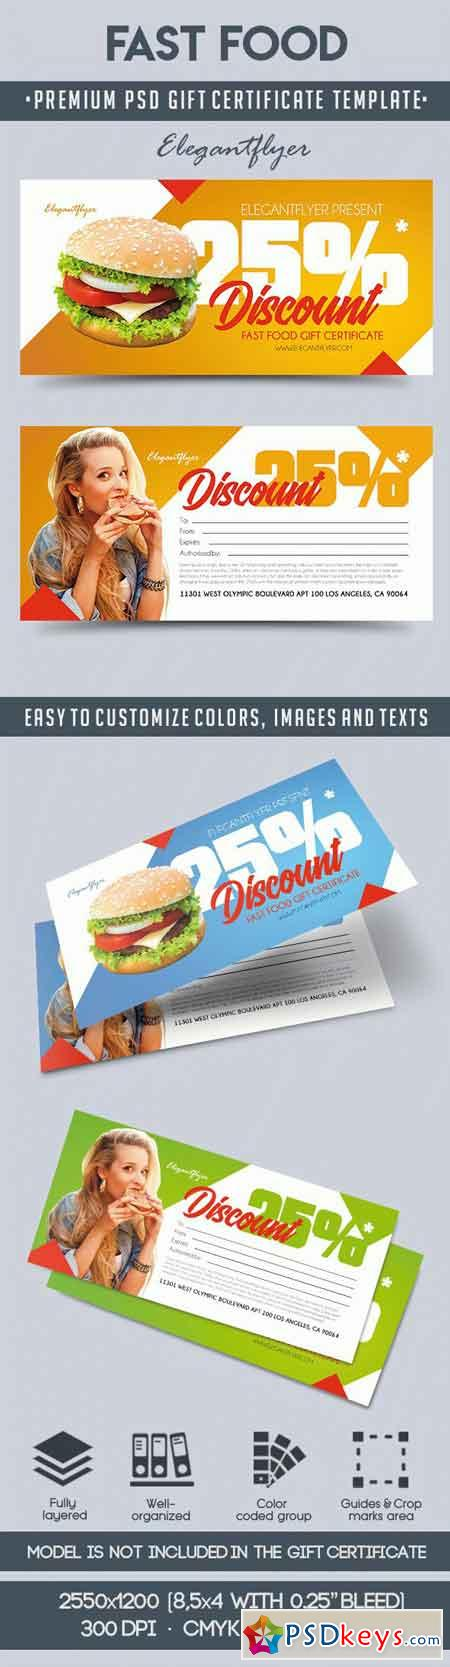 Template for Fast Food Gift Certificate